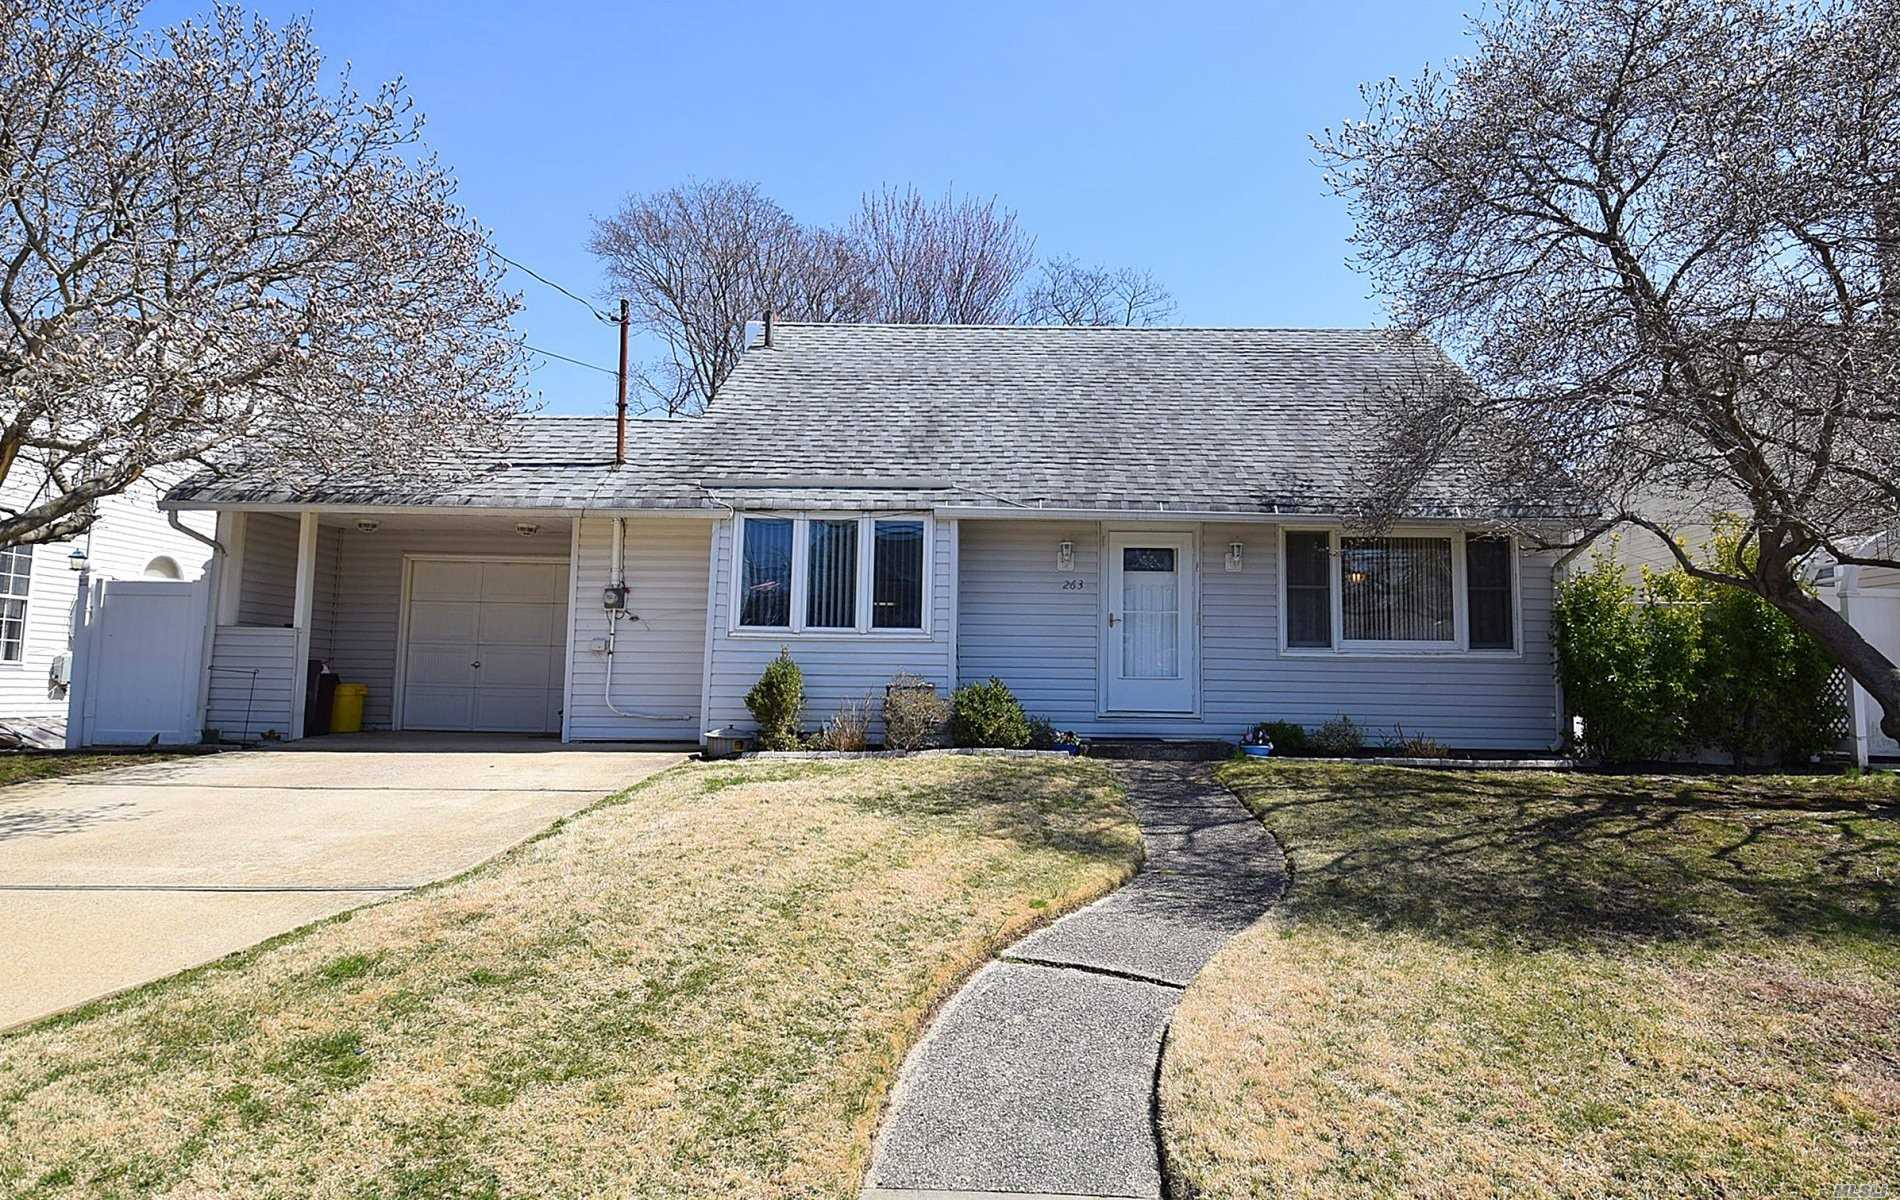 Charming Cape Midblock in Desirable Massapequa Park . Featuring a Beautifully Renovated Eat In Kitchen. Four Bedrooms perfect for a growing Family. Beautiful Yard with Patio , Perfect for Entertaining. A Must See !!!